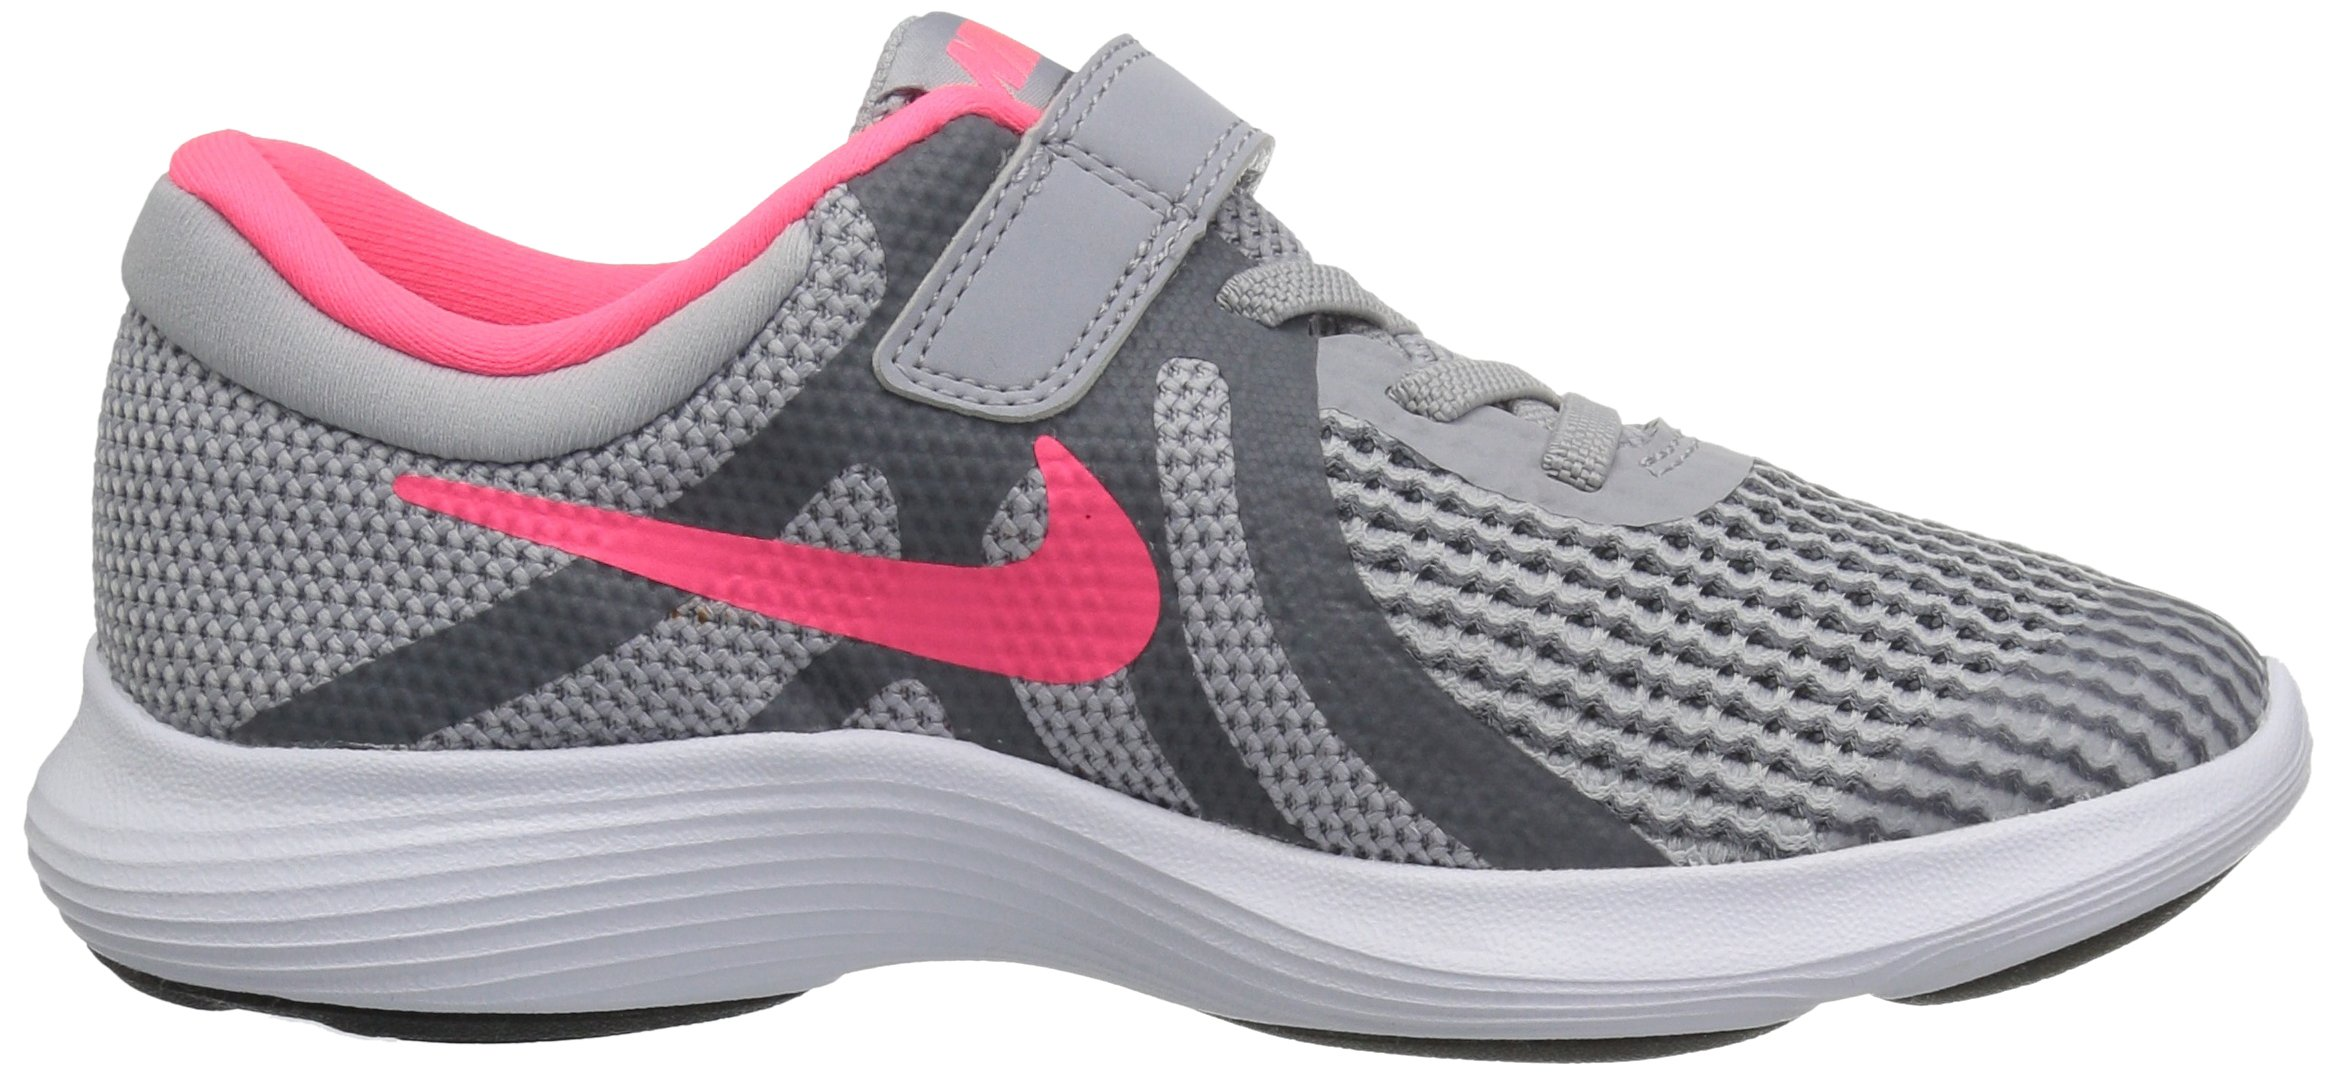 Nike Girls' Revolution 4 (PSV) Running Shoe, Wolf Racer Pink-Cool Grey-White, 3Y Child US Little Kid by Nike (Image #6)